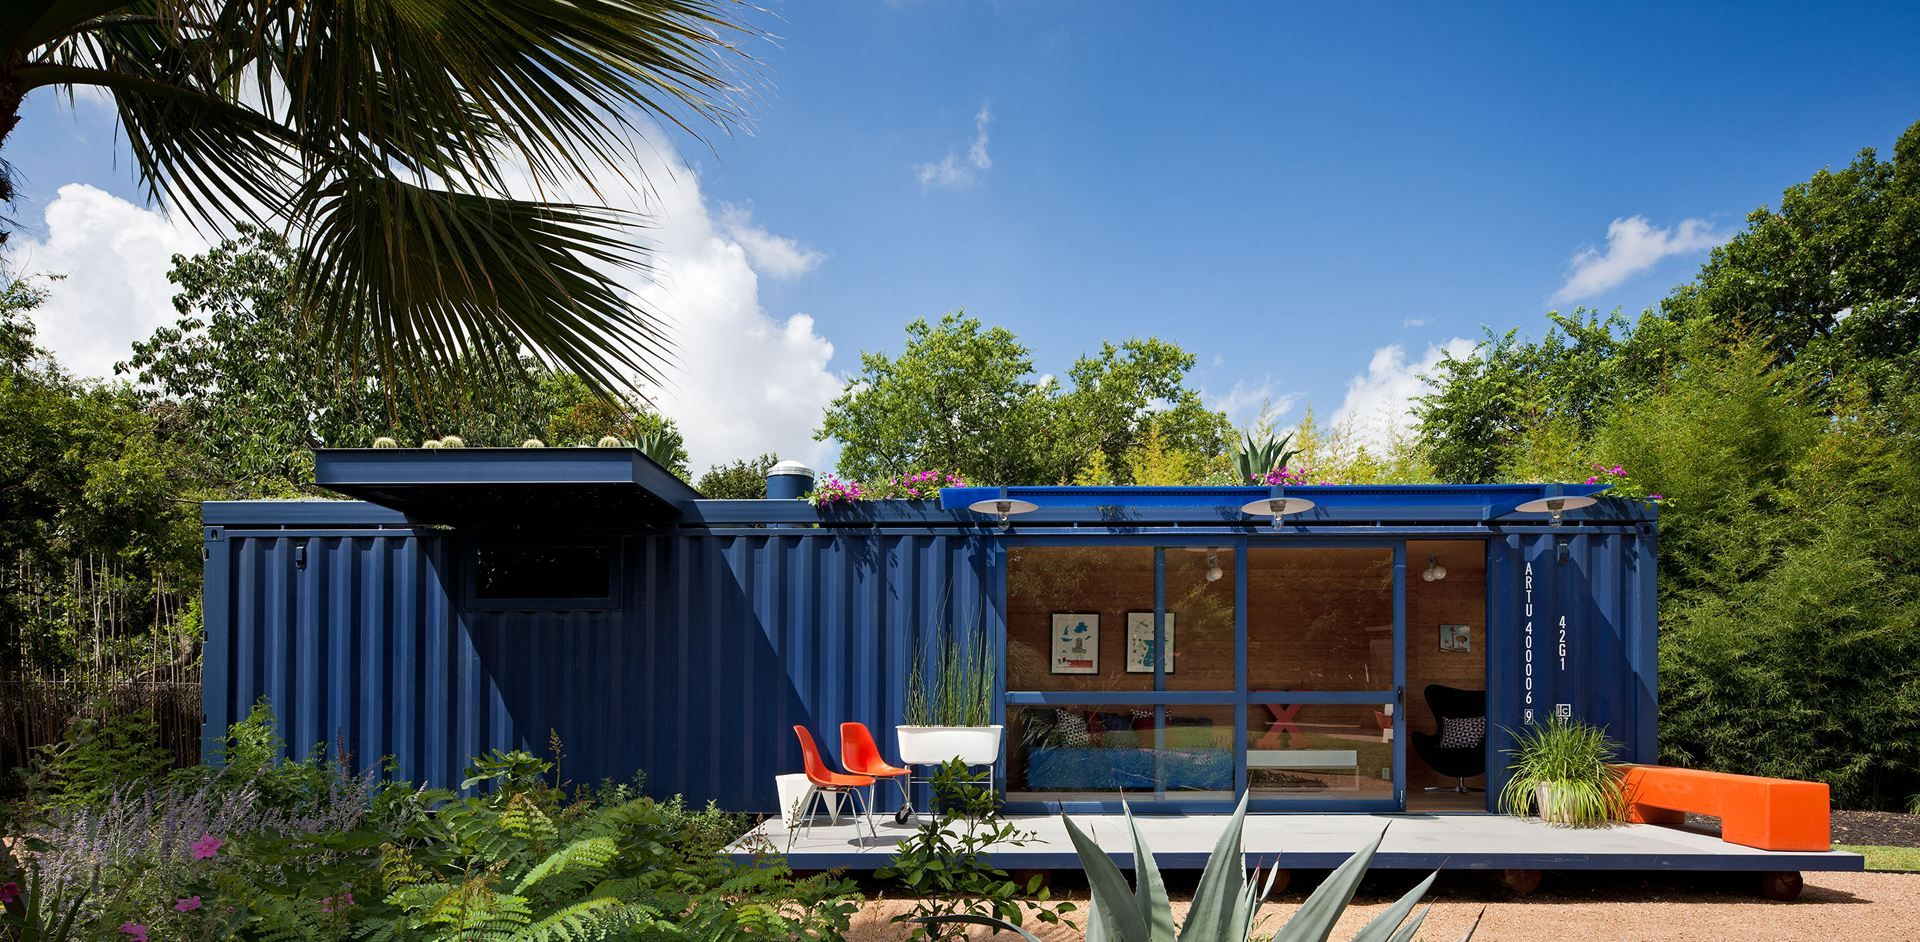 container guest house picture gallery - Tree House Plans Metal Crate